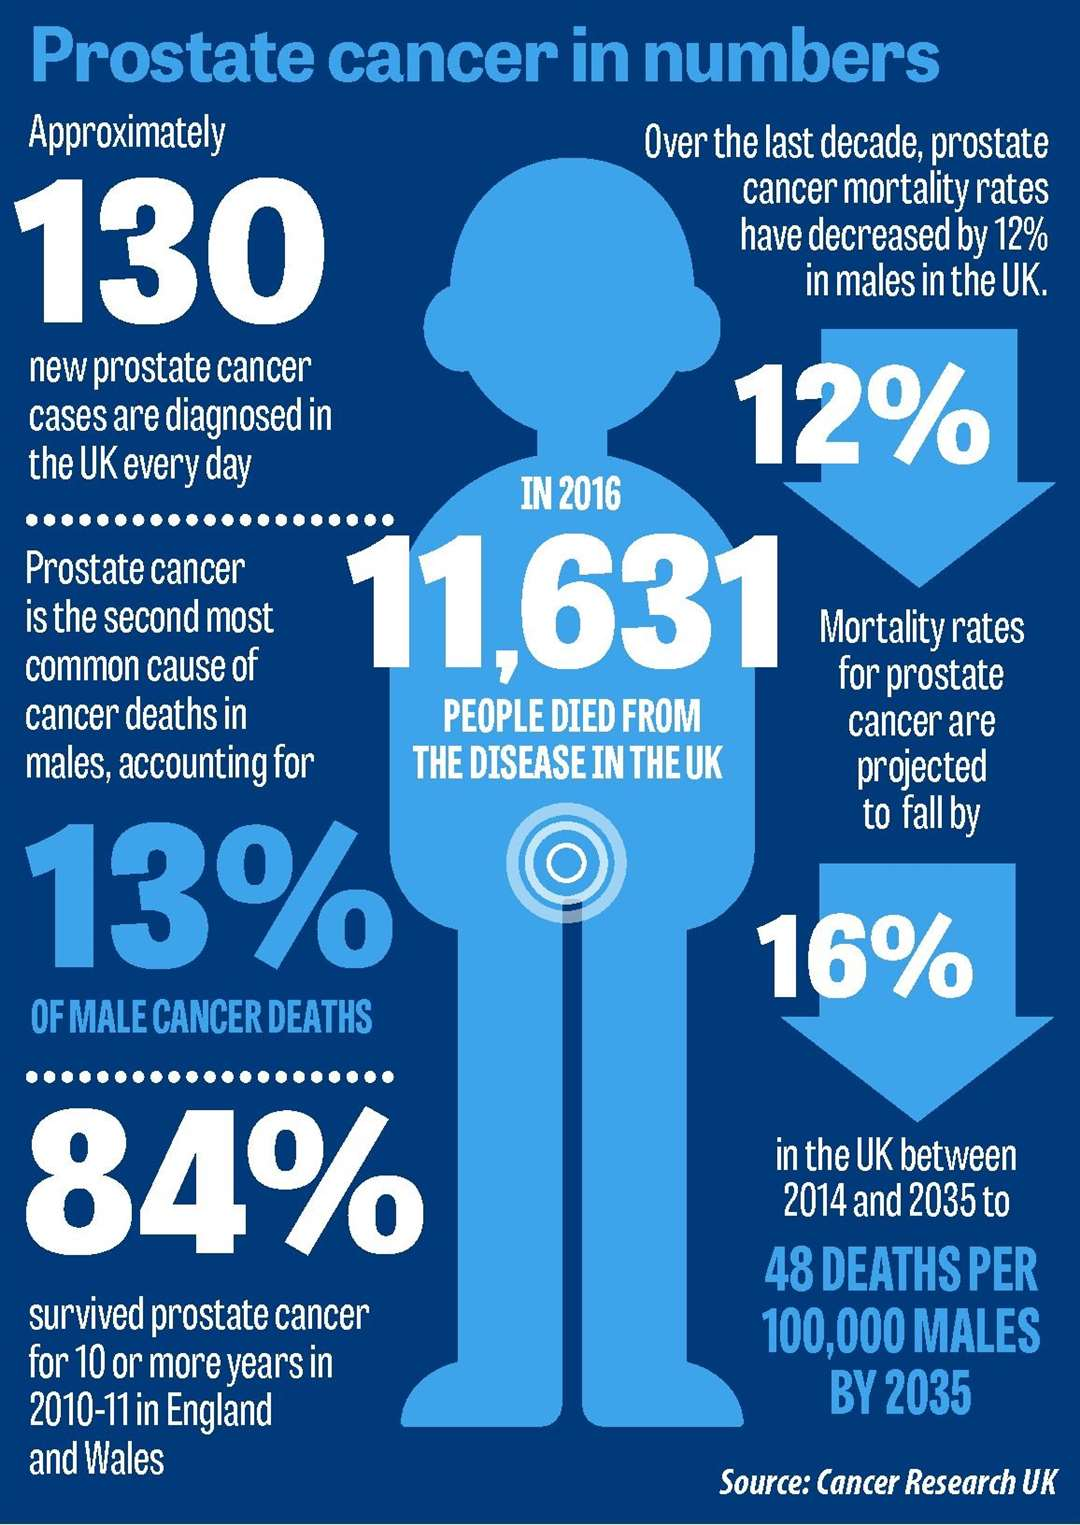 Prostate cancer in numbers